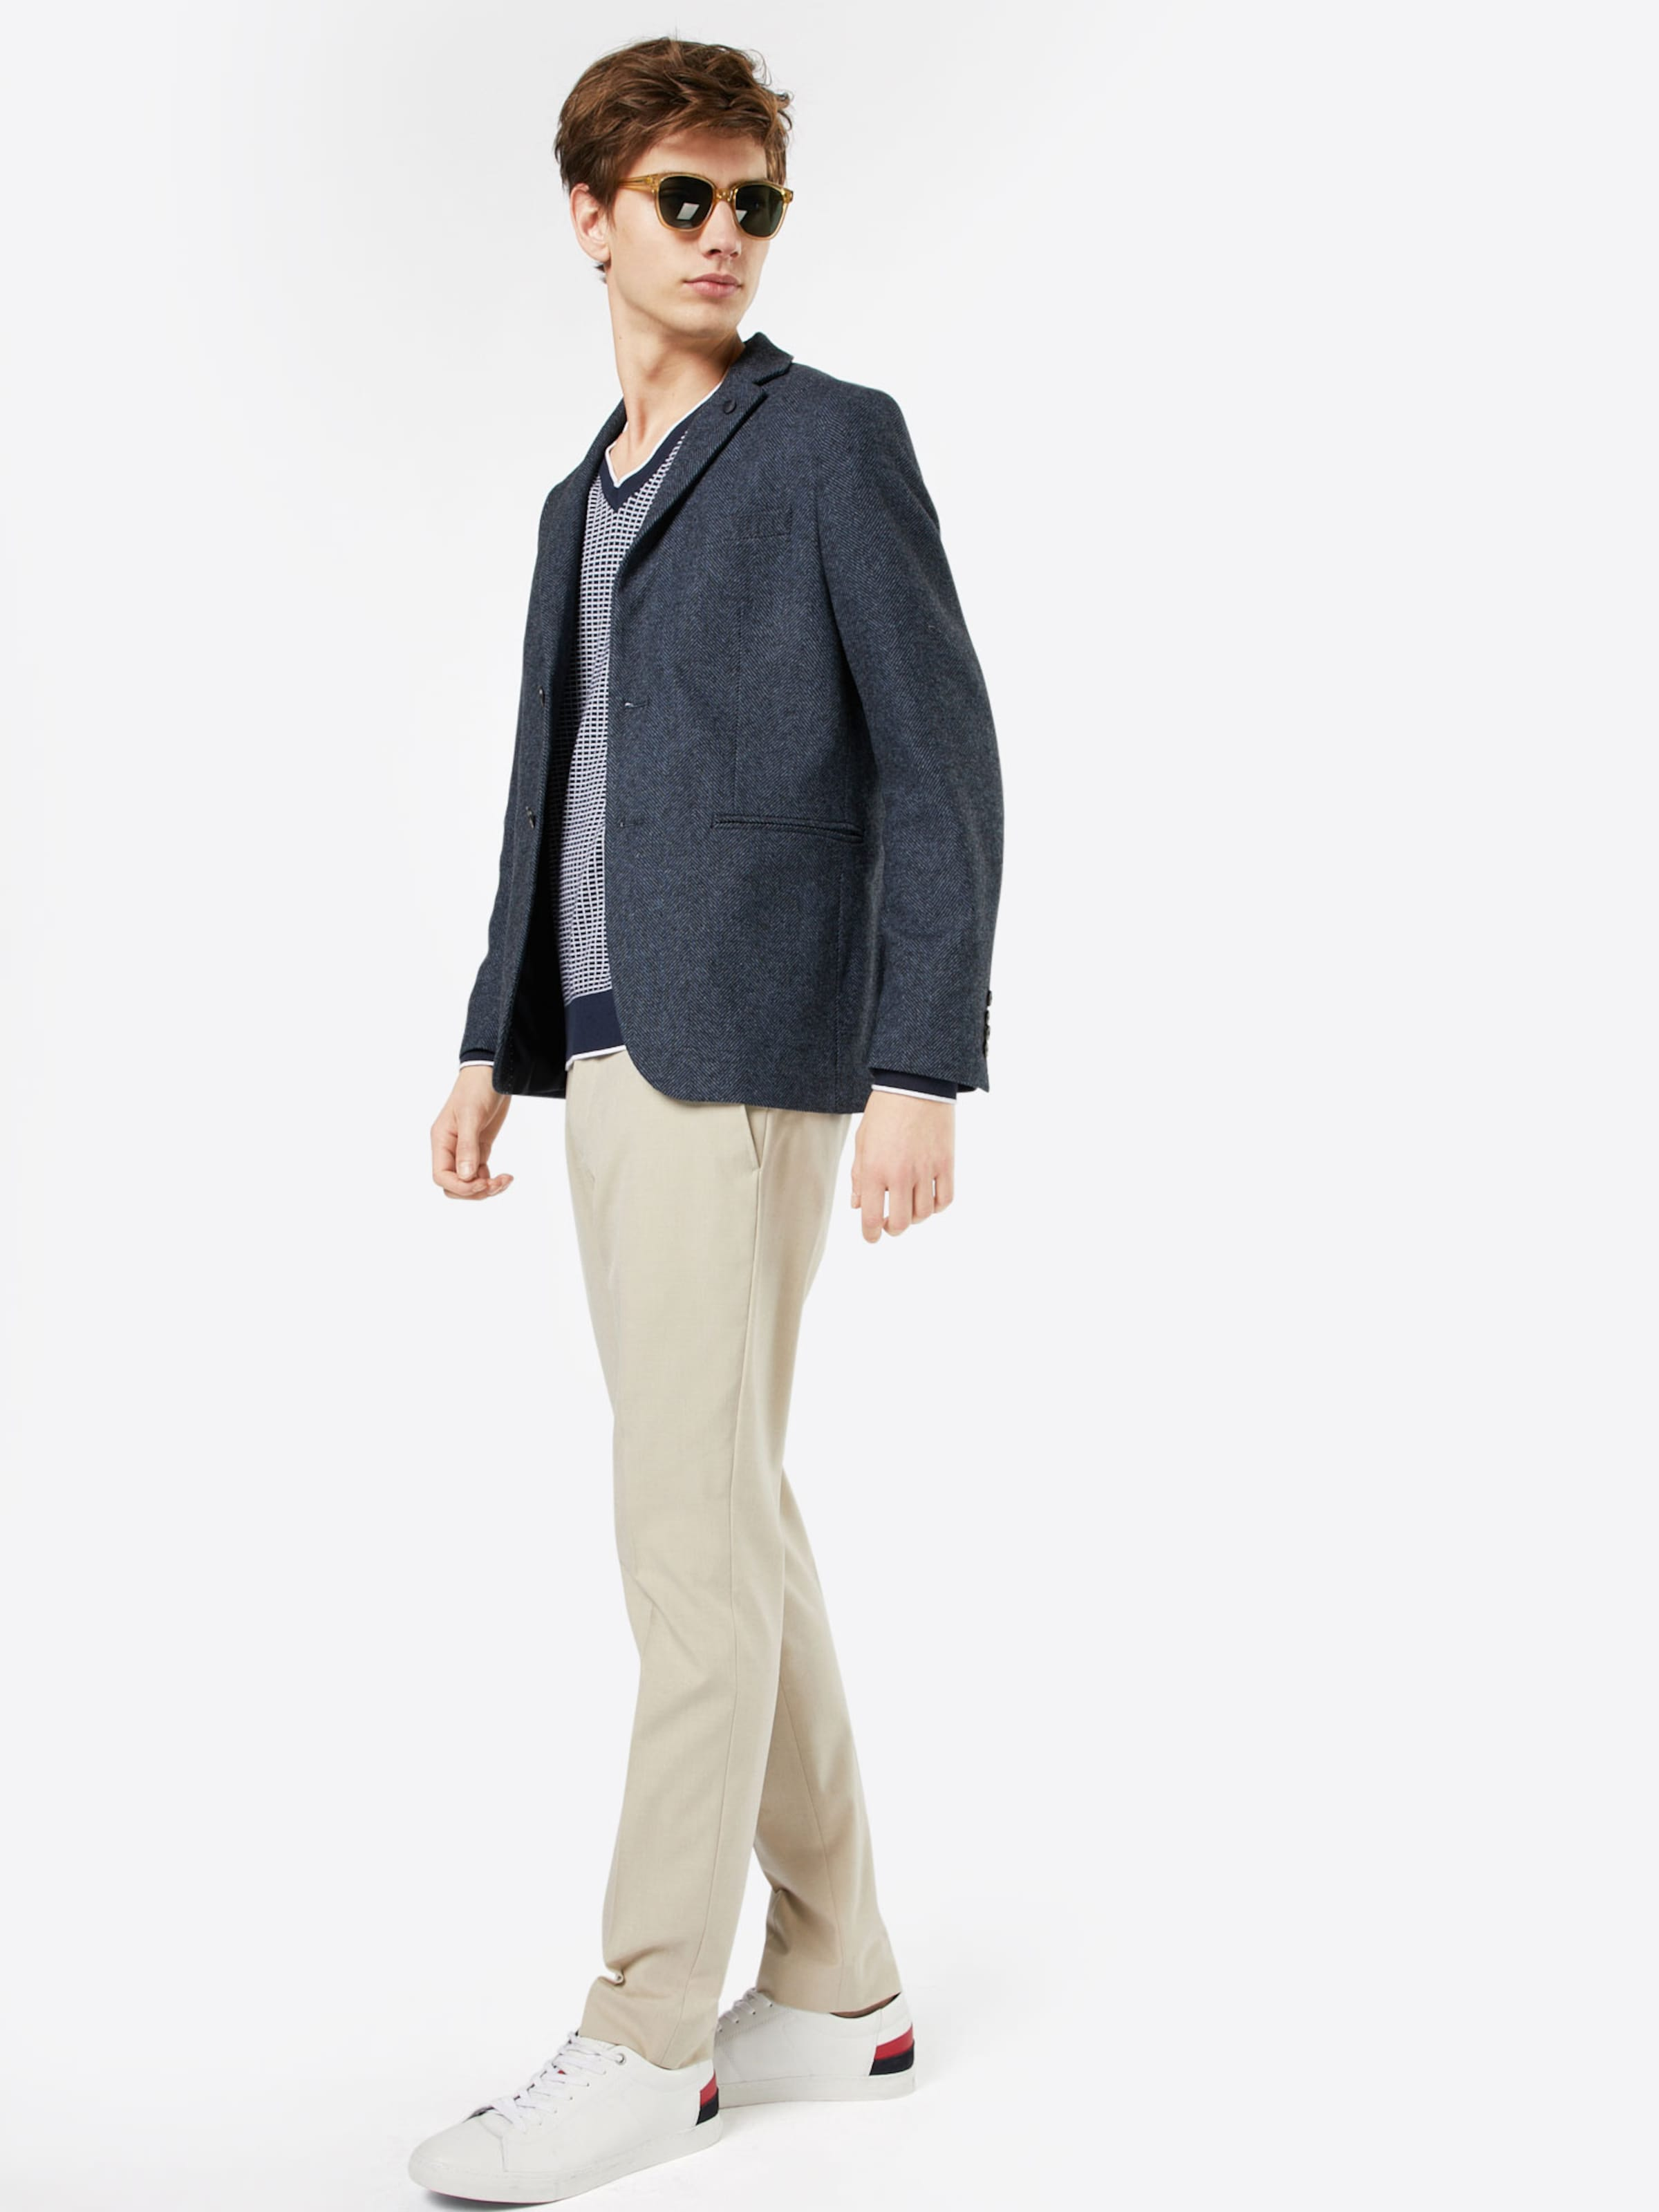 Sakko Business DUNCAN' 'SHDONE Sakko HOMME SELECTED SELECTED Business HOMME HOWaqBw6